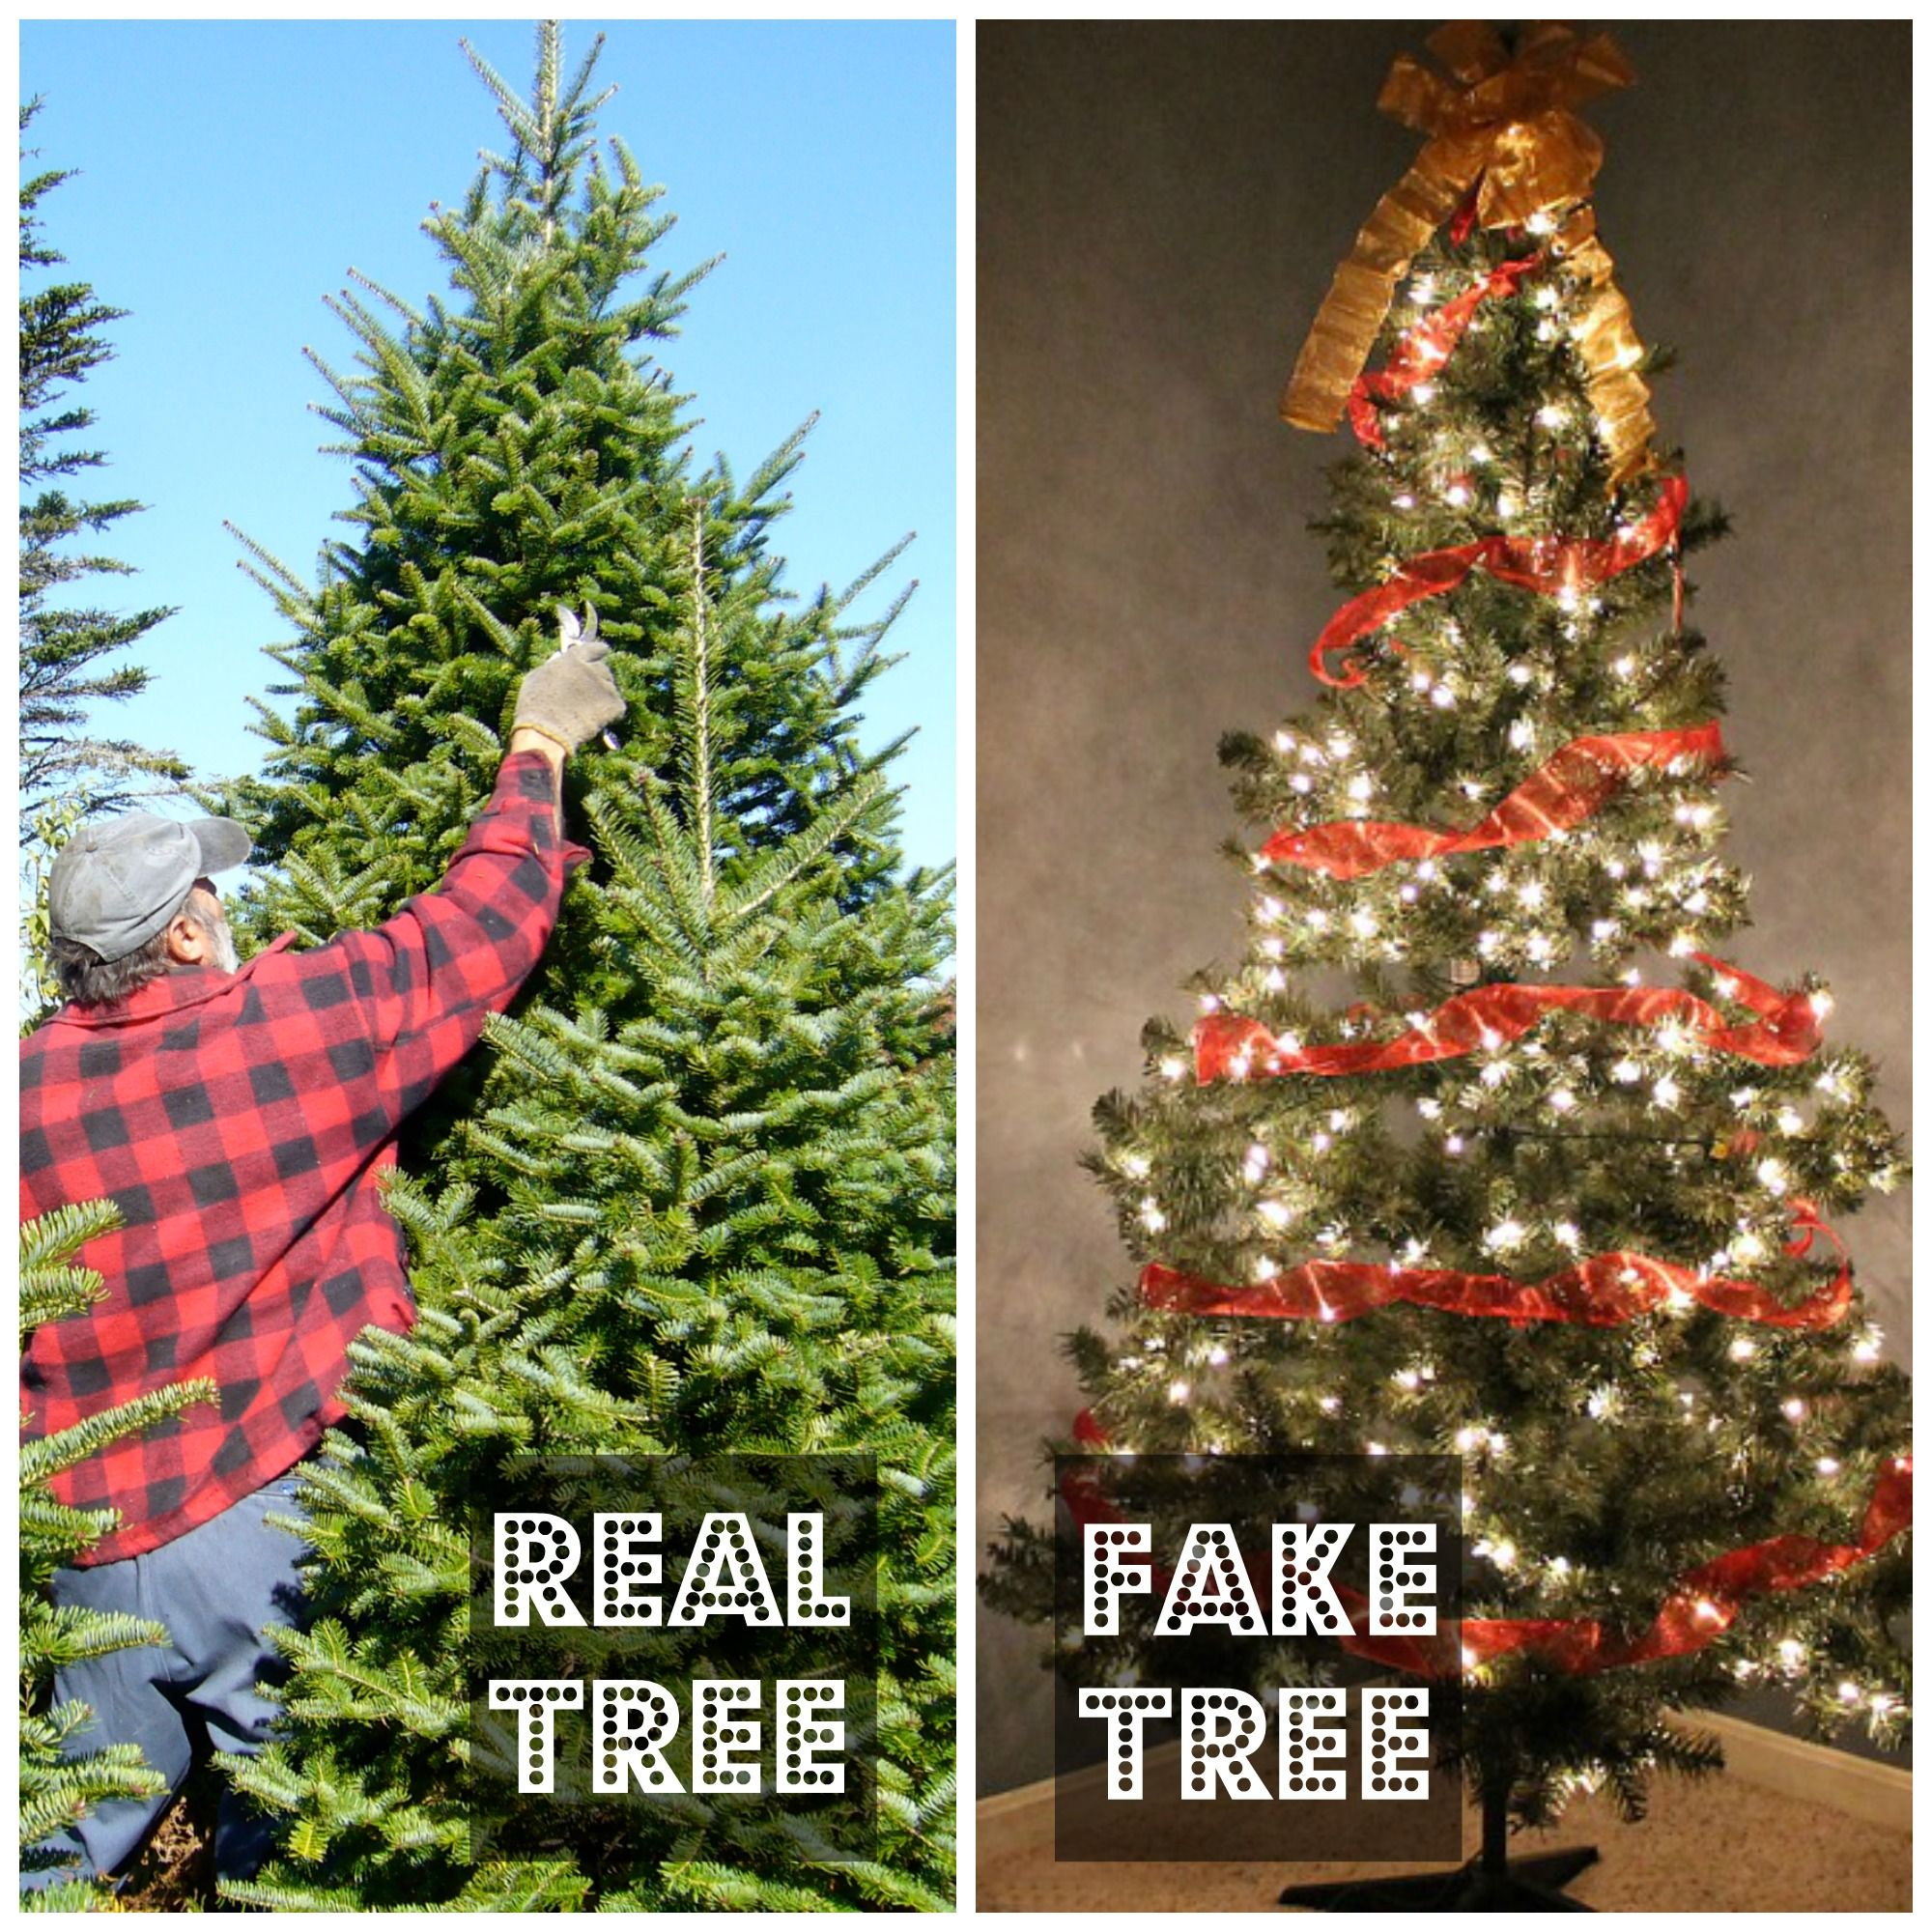 Are you team Real Tree or Fake Tree? Fake trees, New